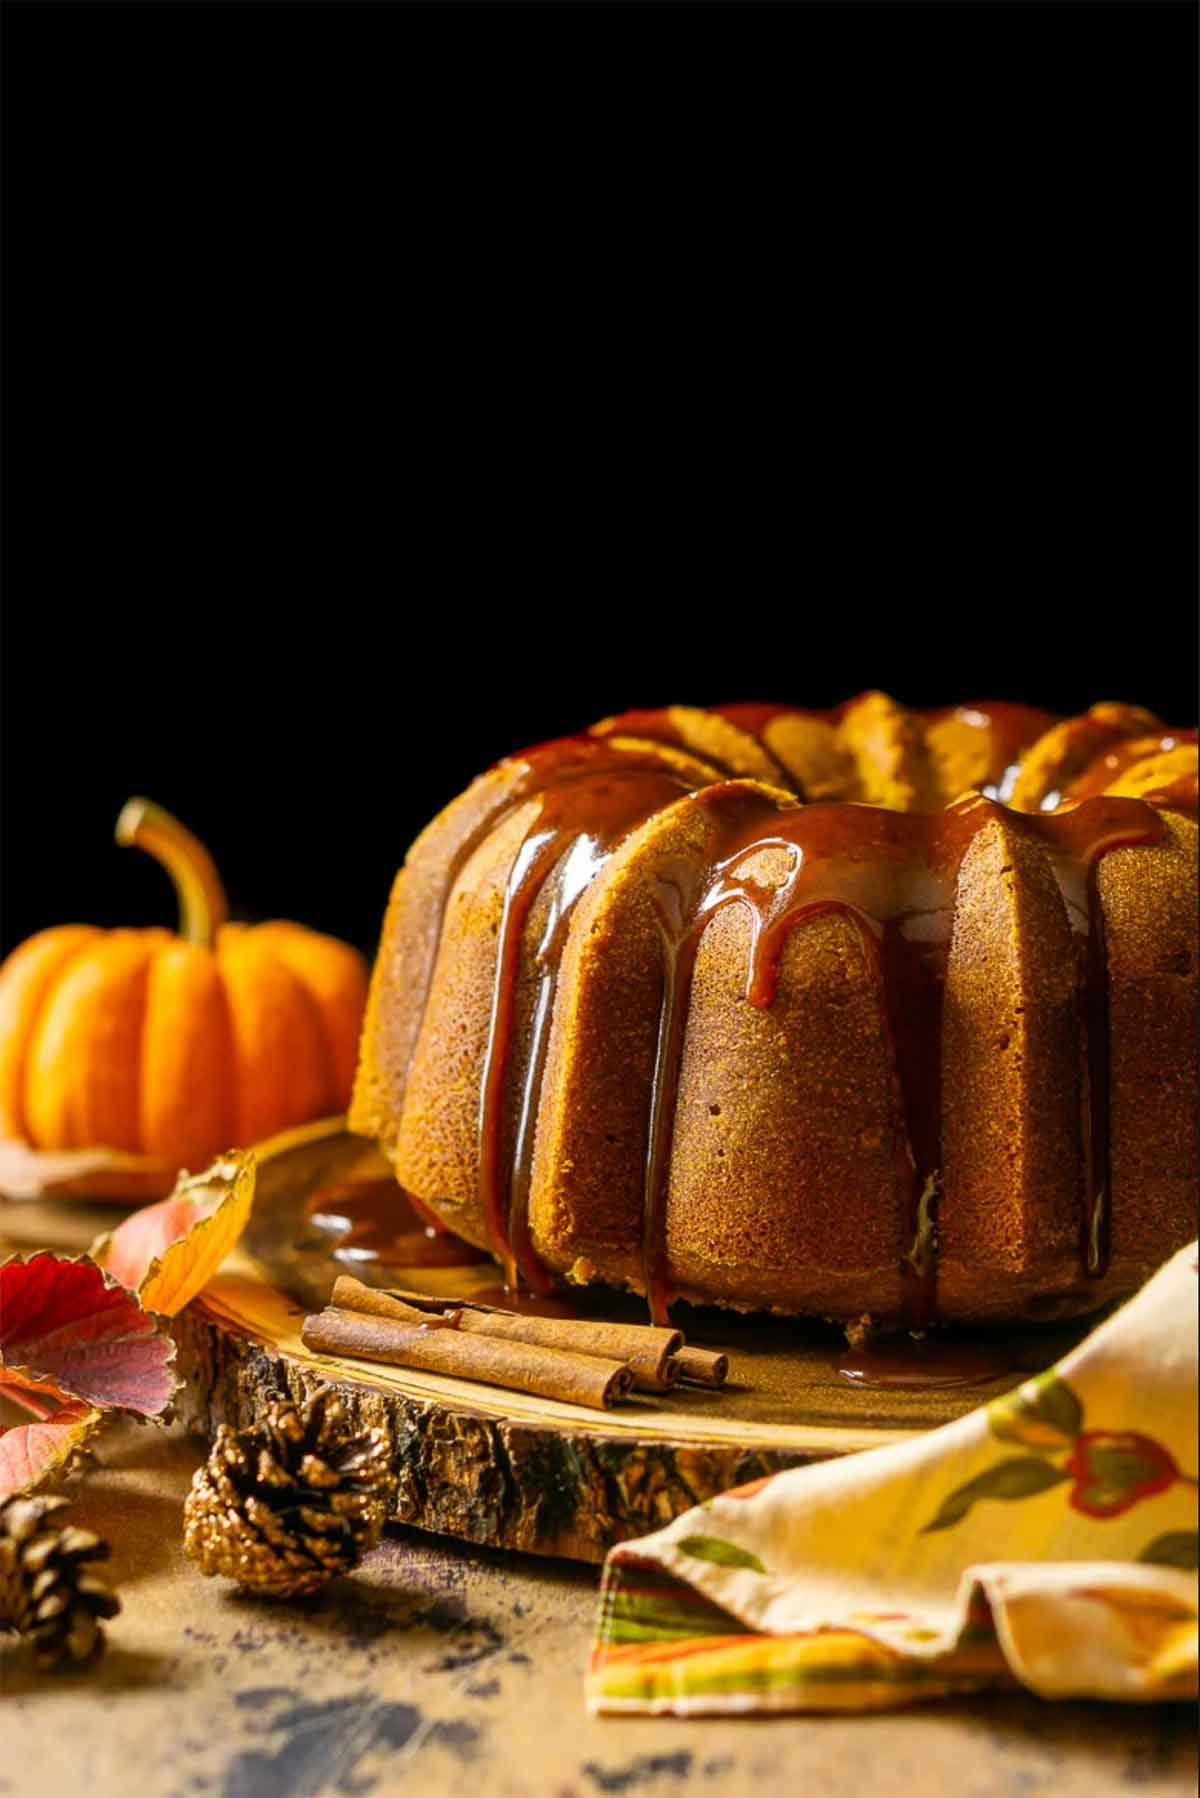 A pumpkin cake on a wooden table beside a small pumpkin and scattered pinecones.